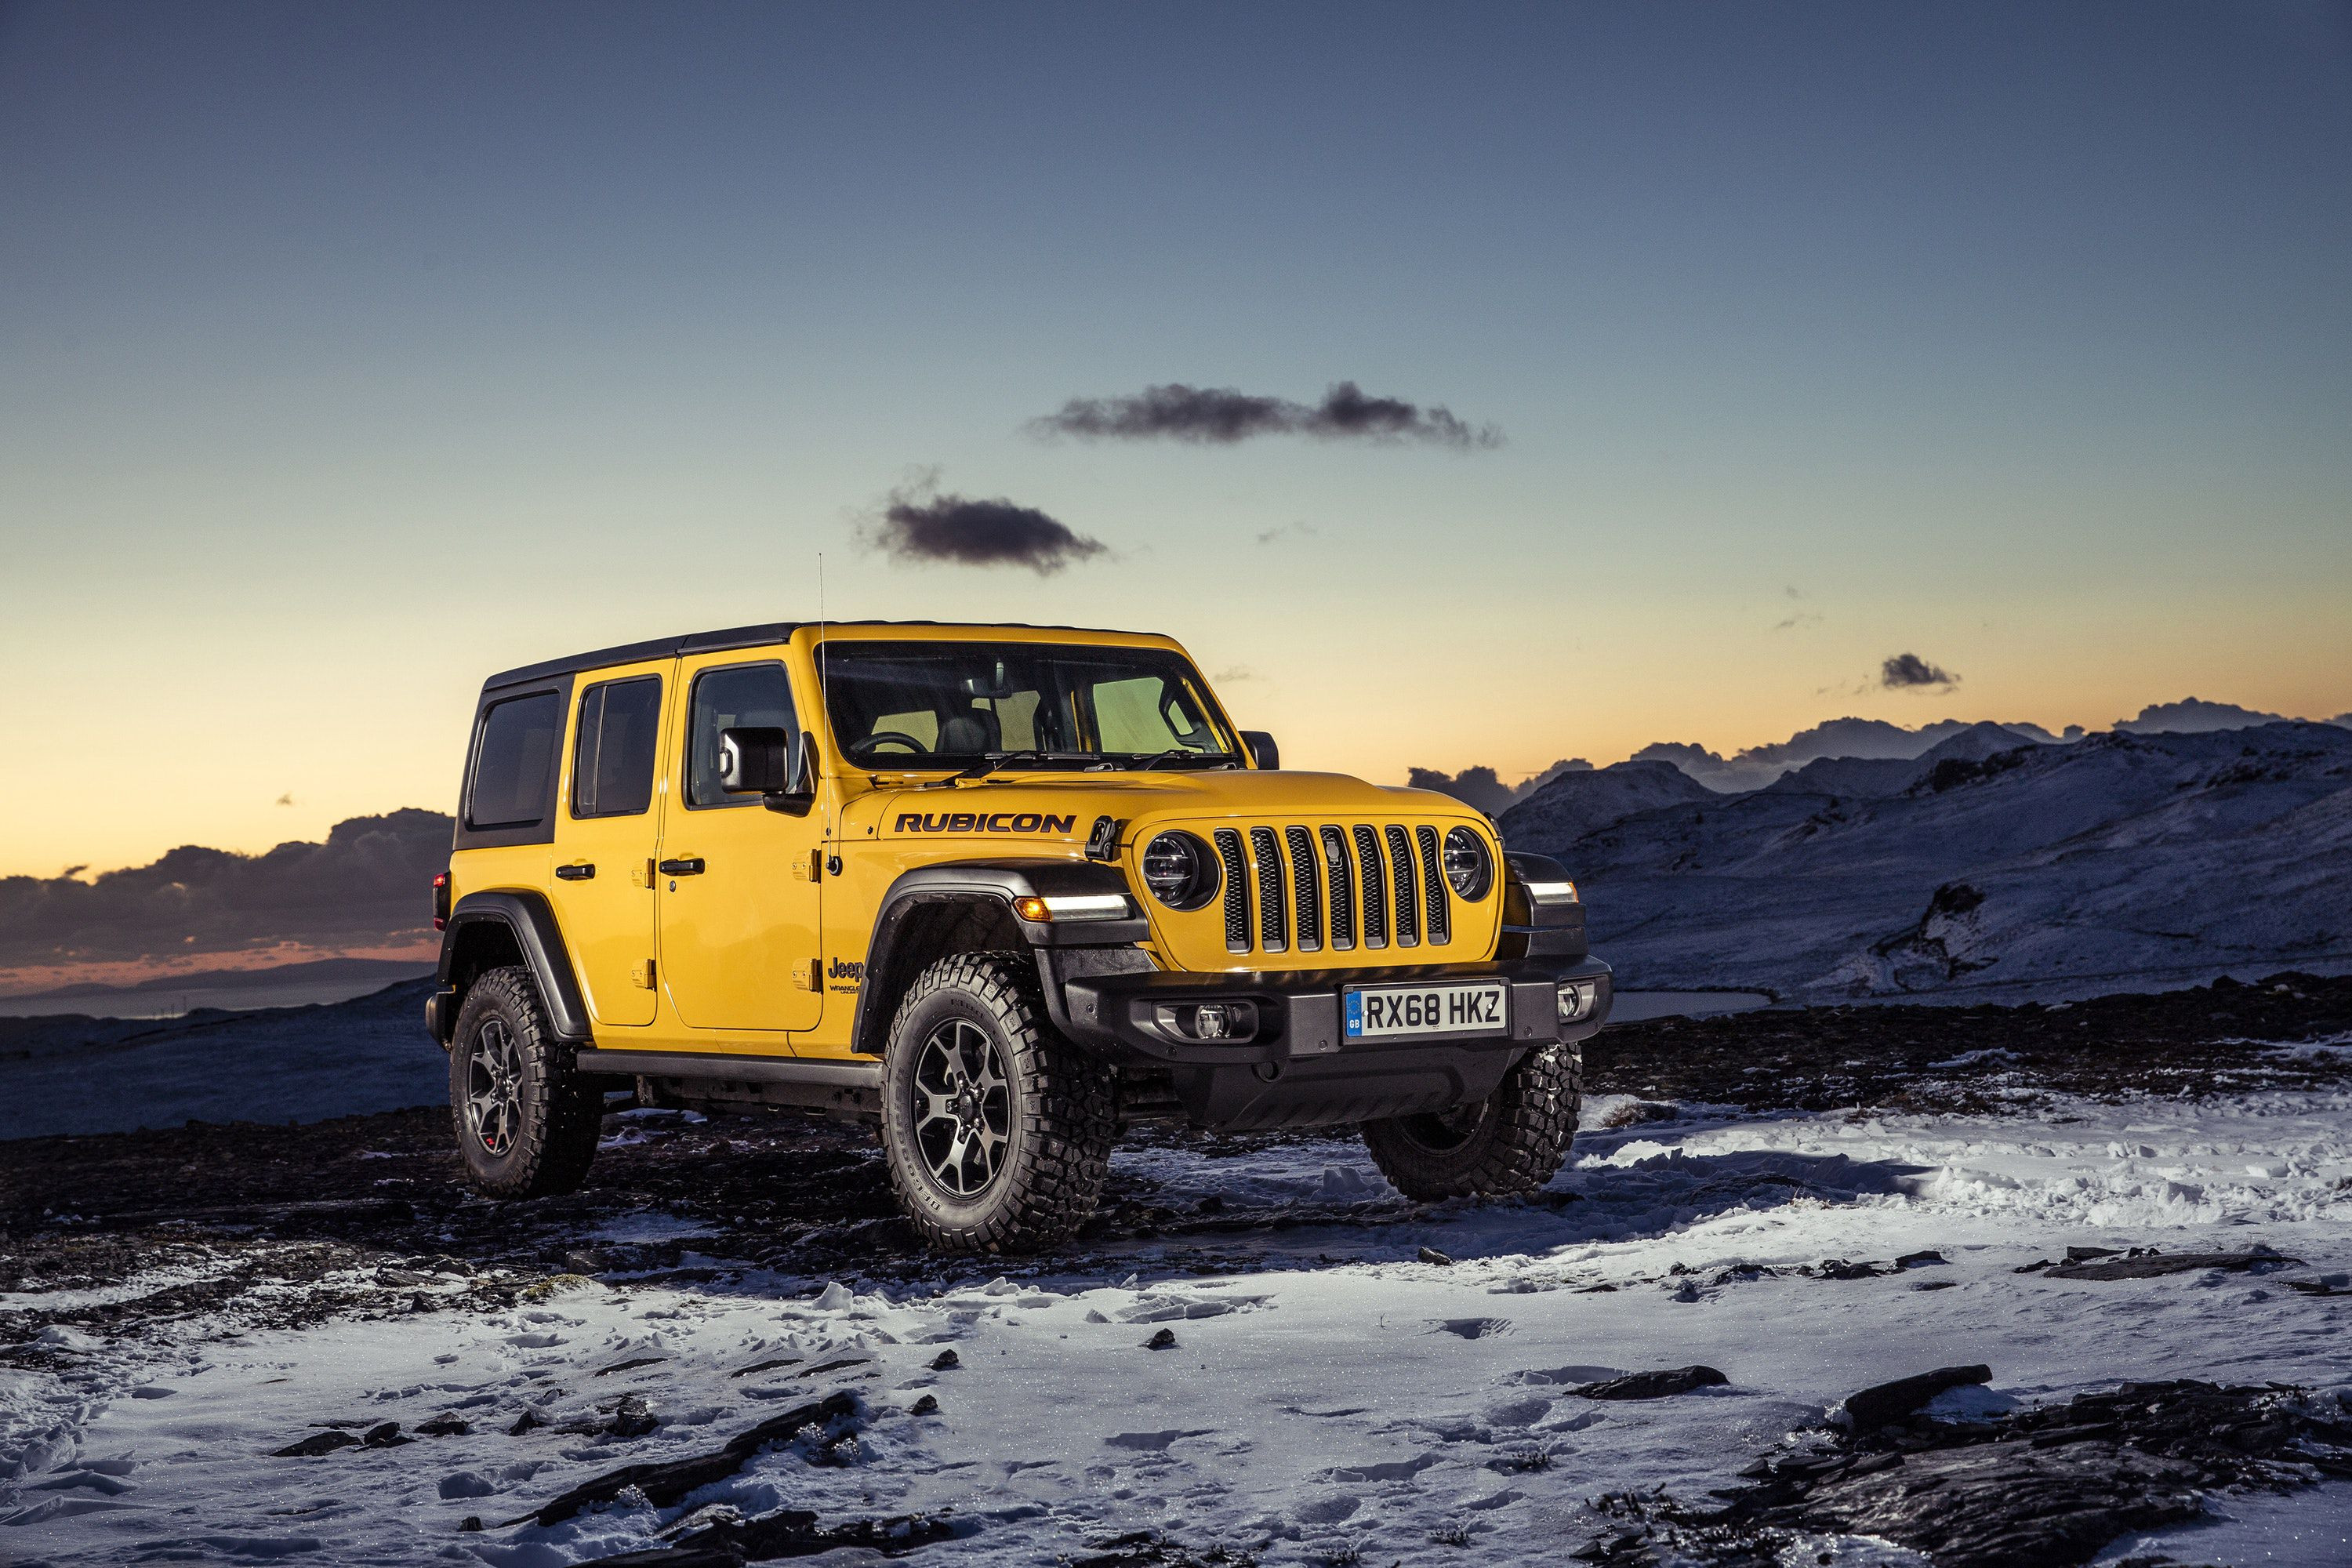 parked view of yellow Jeep Wrangler